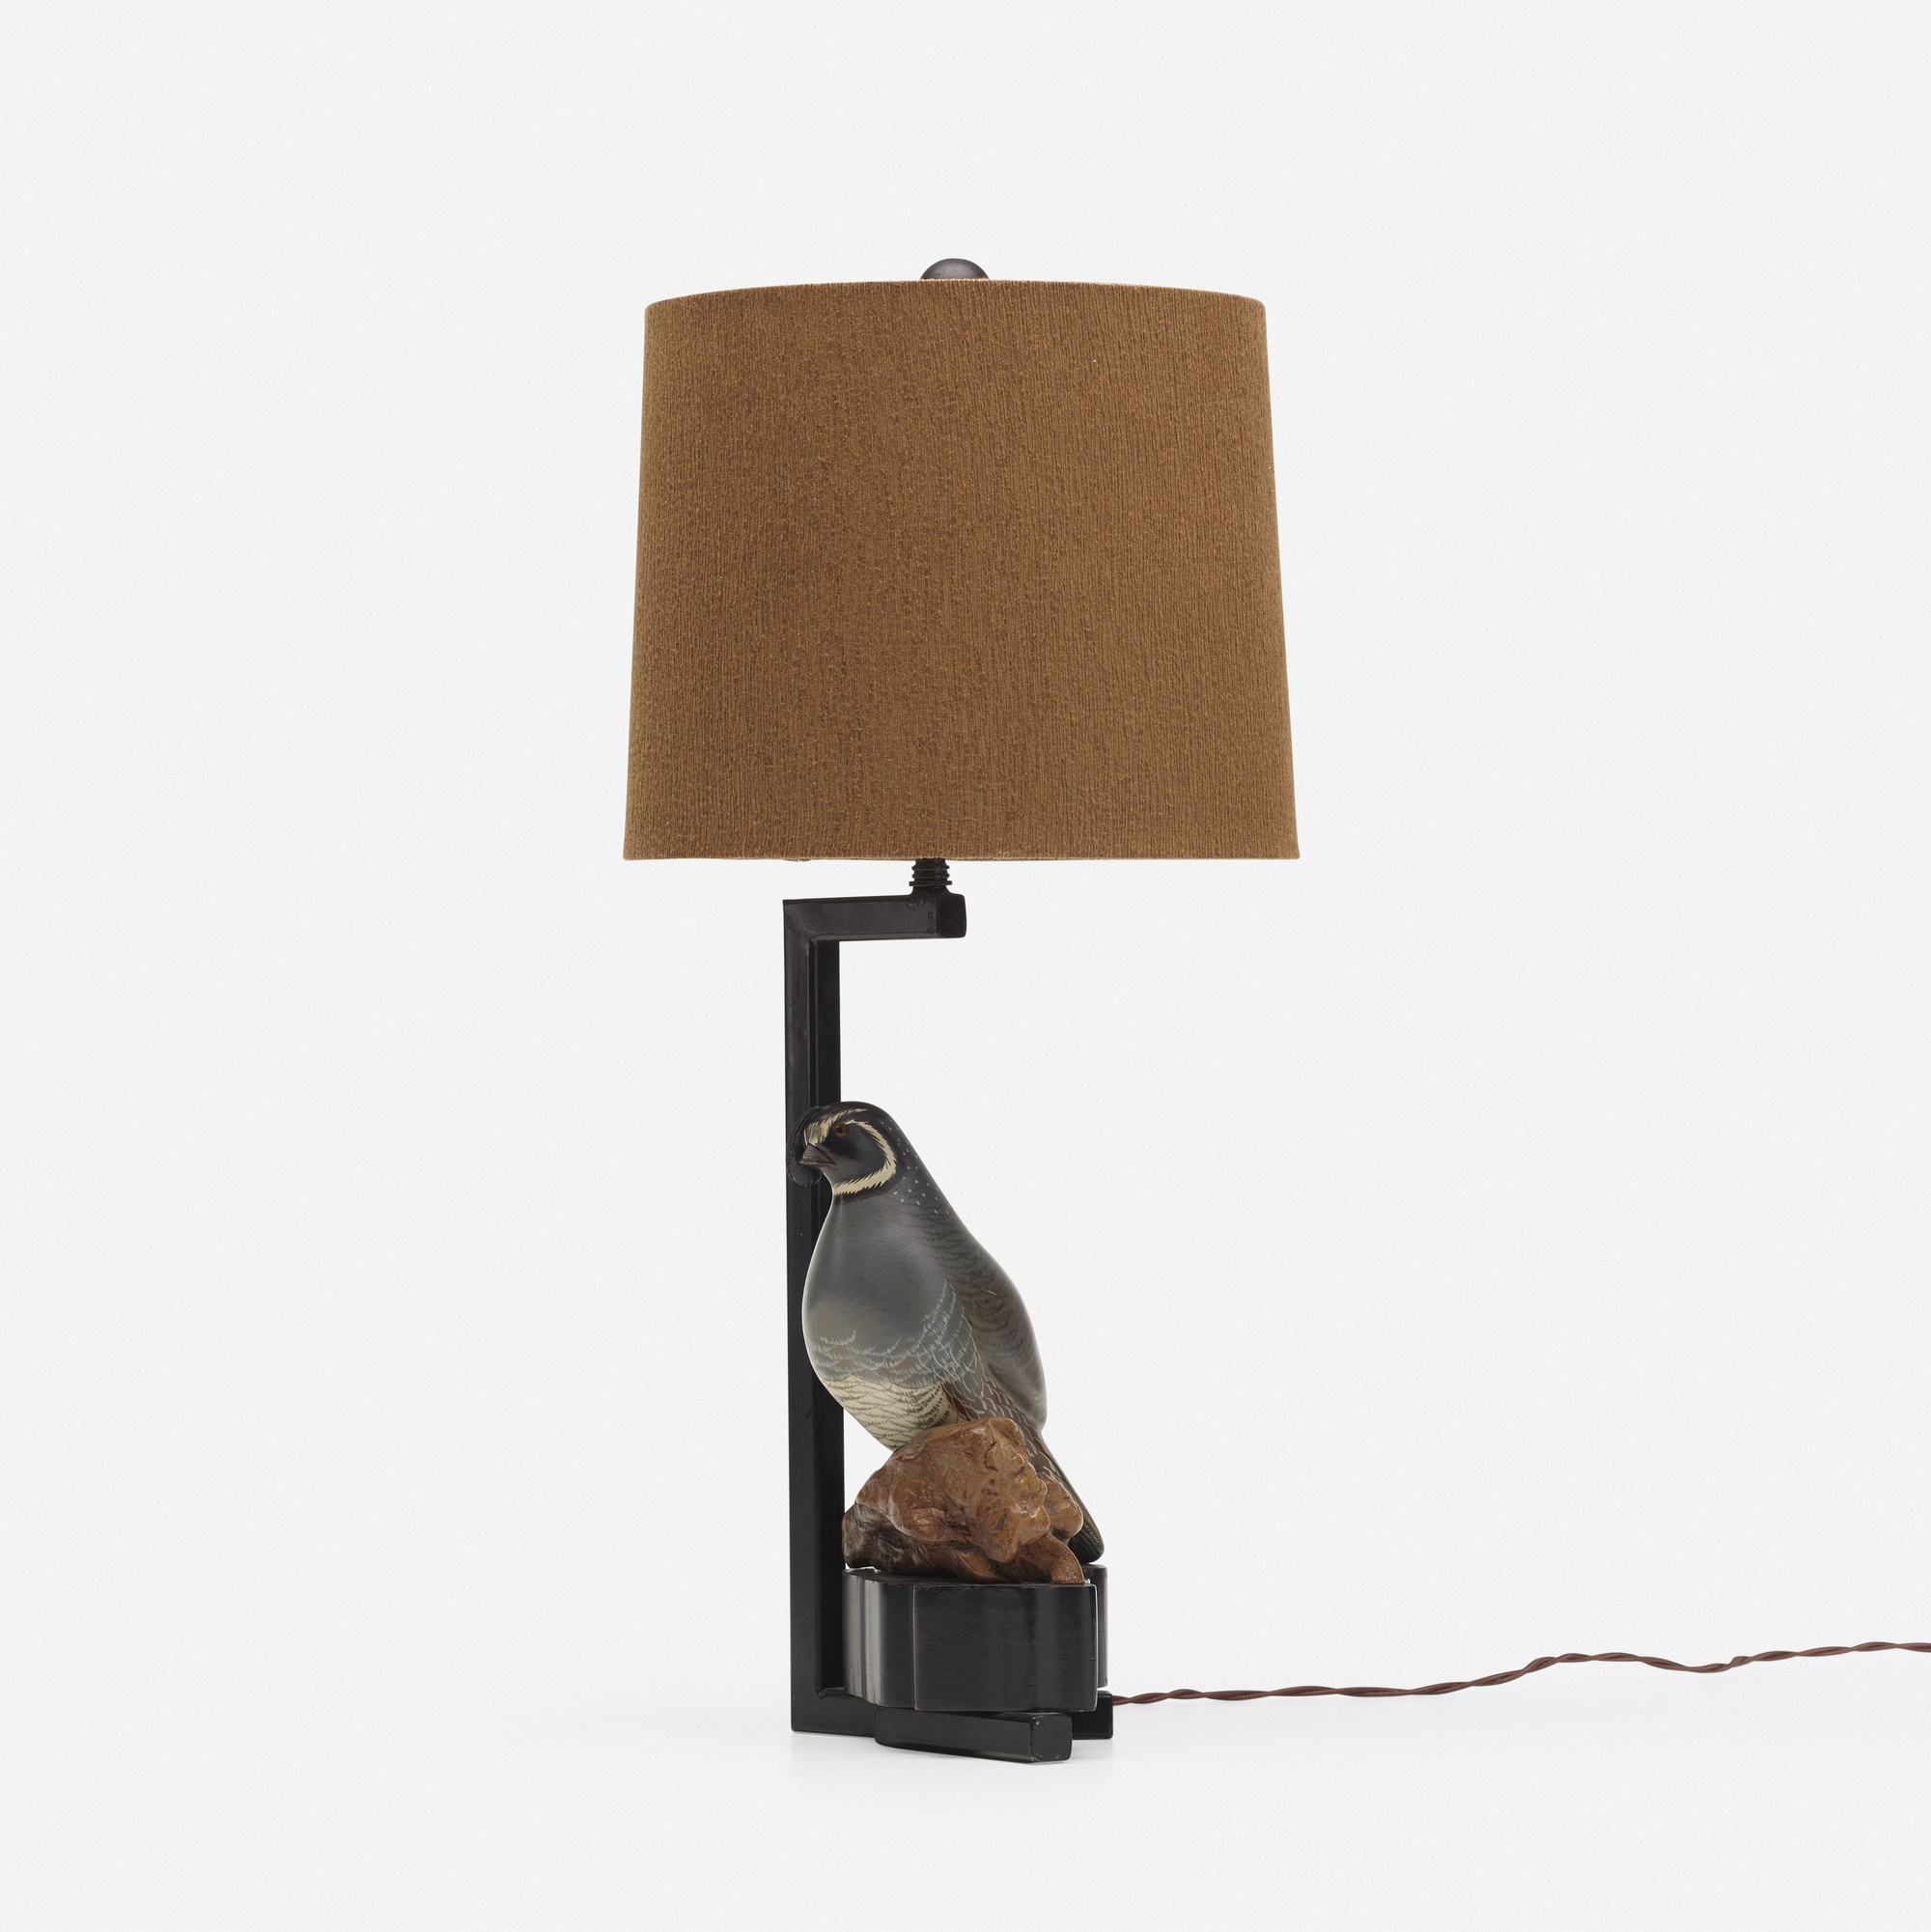 315: In The Manner Of William (Billy) Haines / table lamp (1 of 2)